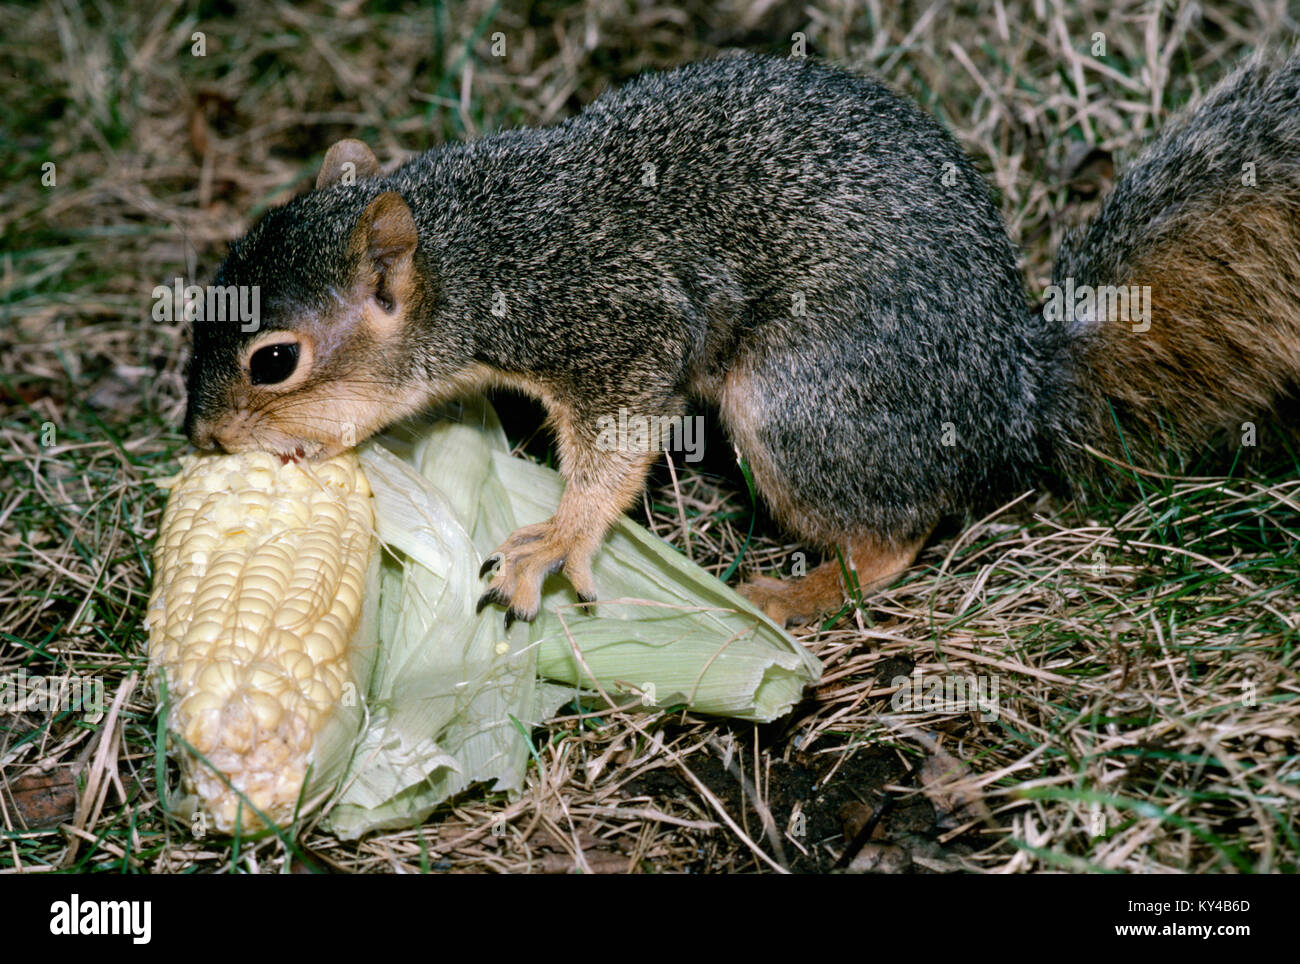 Young squirrel, Sciuridae, eating corn on the cob in grass, USA - Stock Image